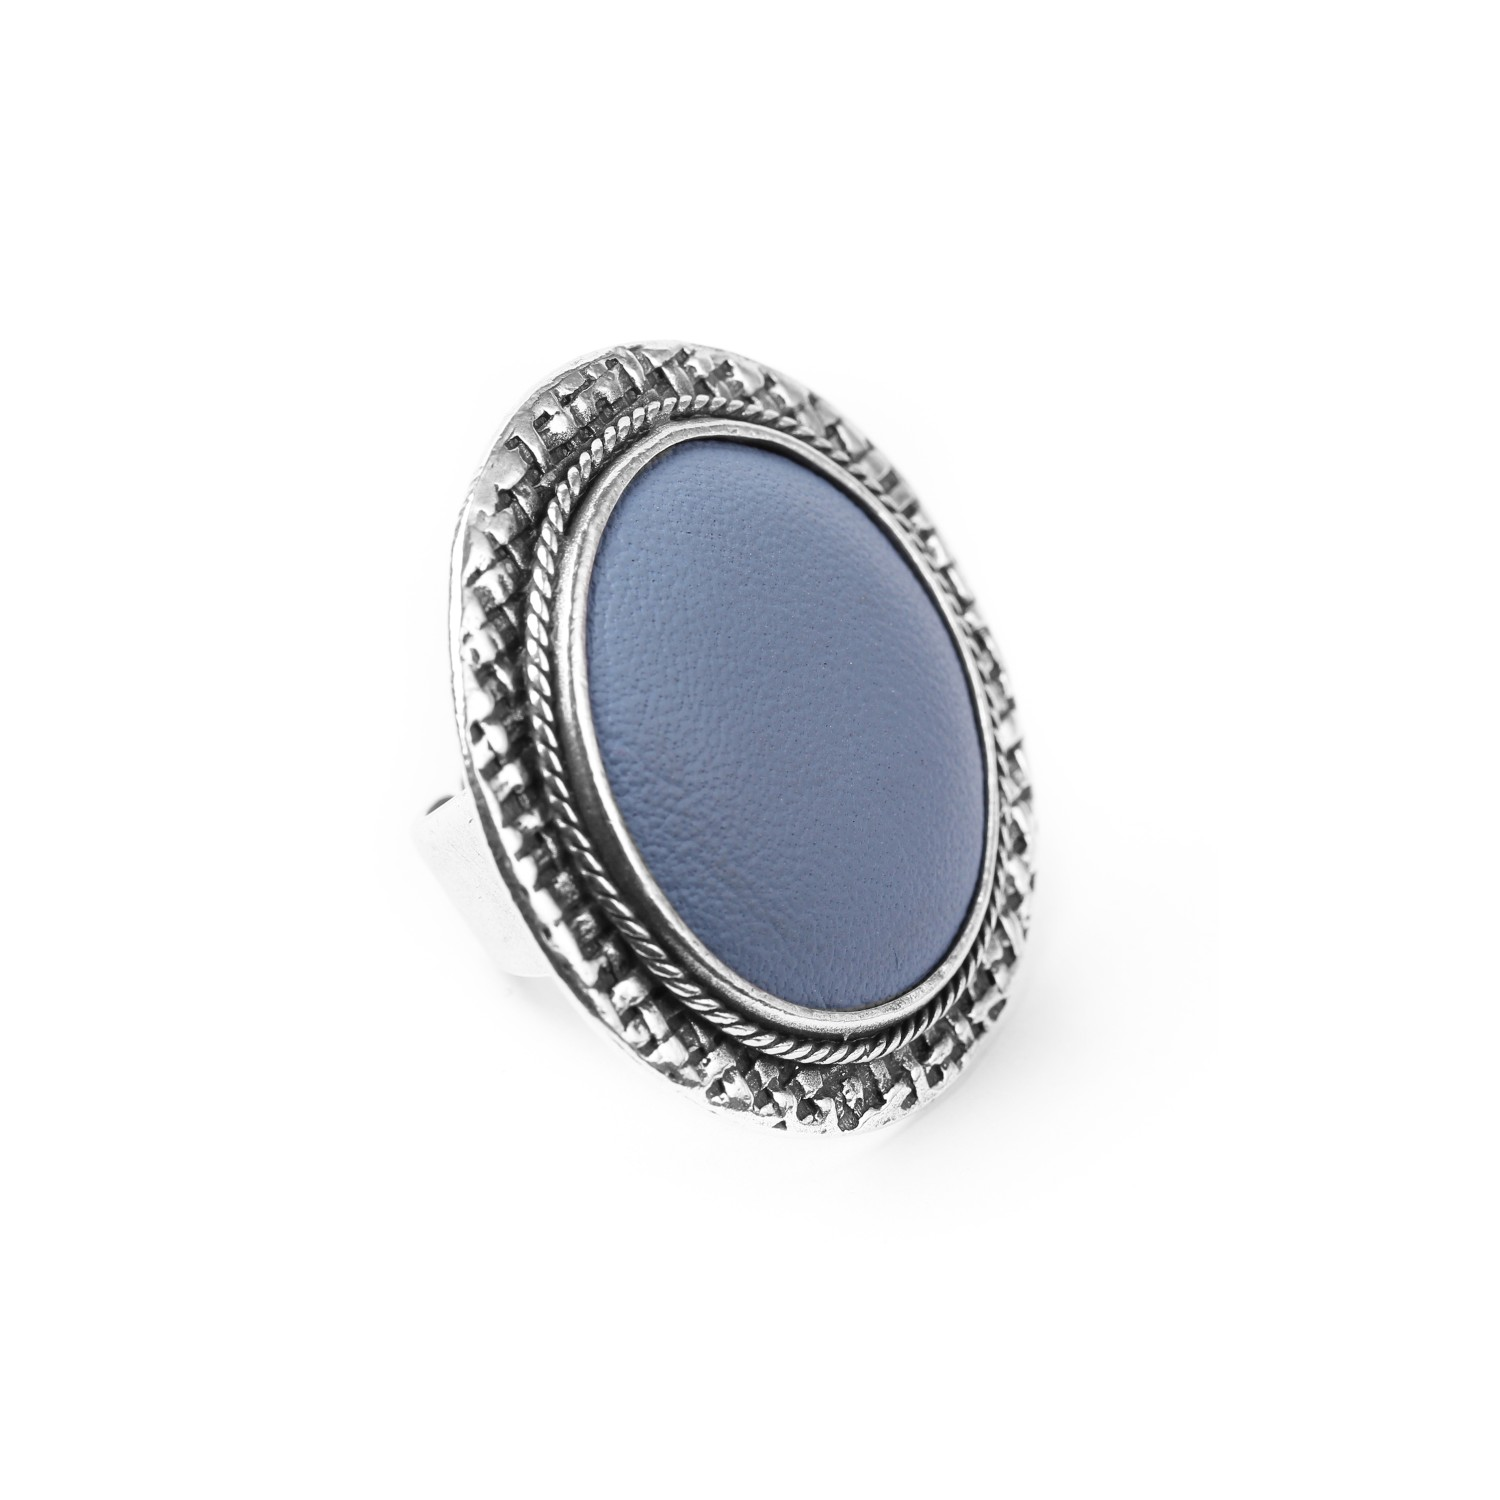 LEATHER bague bleu ciel